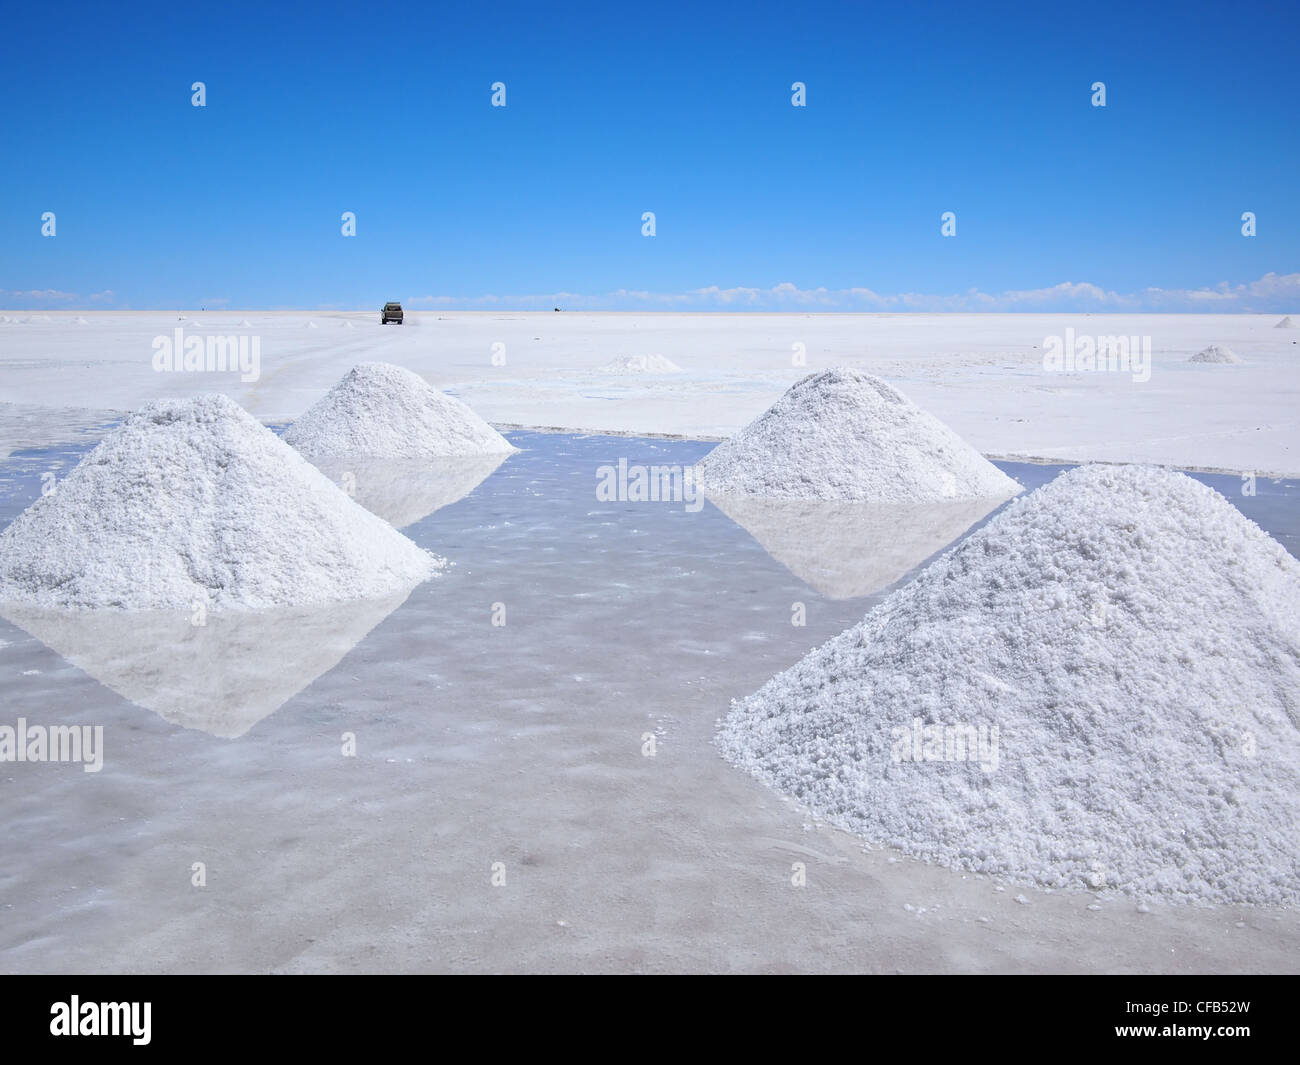 Piles of drying salt and reflection in the water at the Salar de Uyuni (salt flats) in Bolivia. - Stock Image